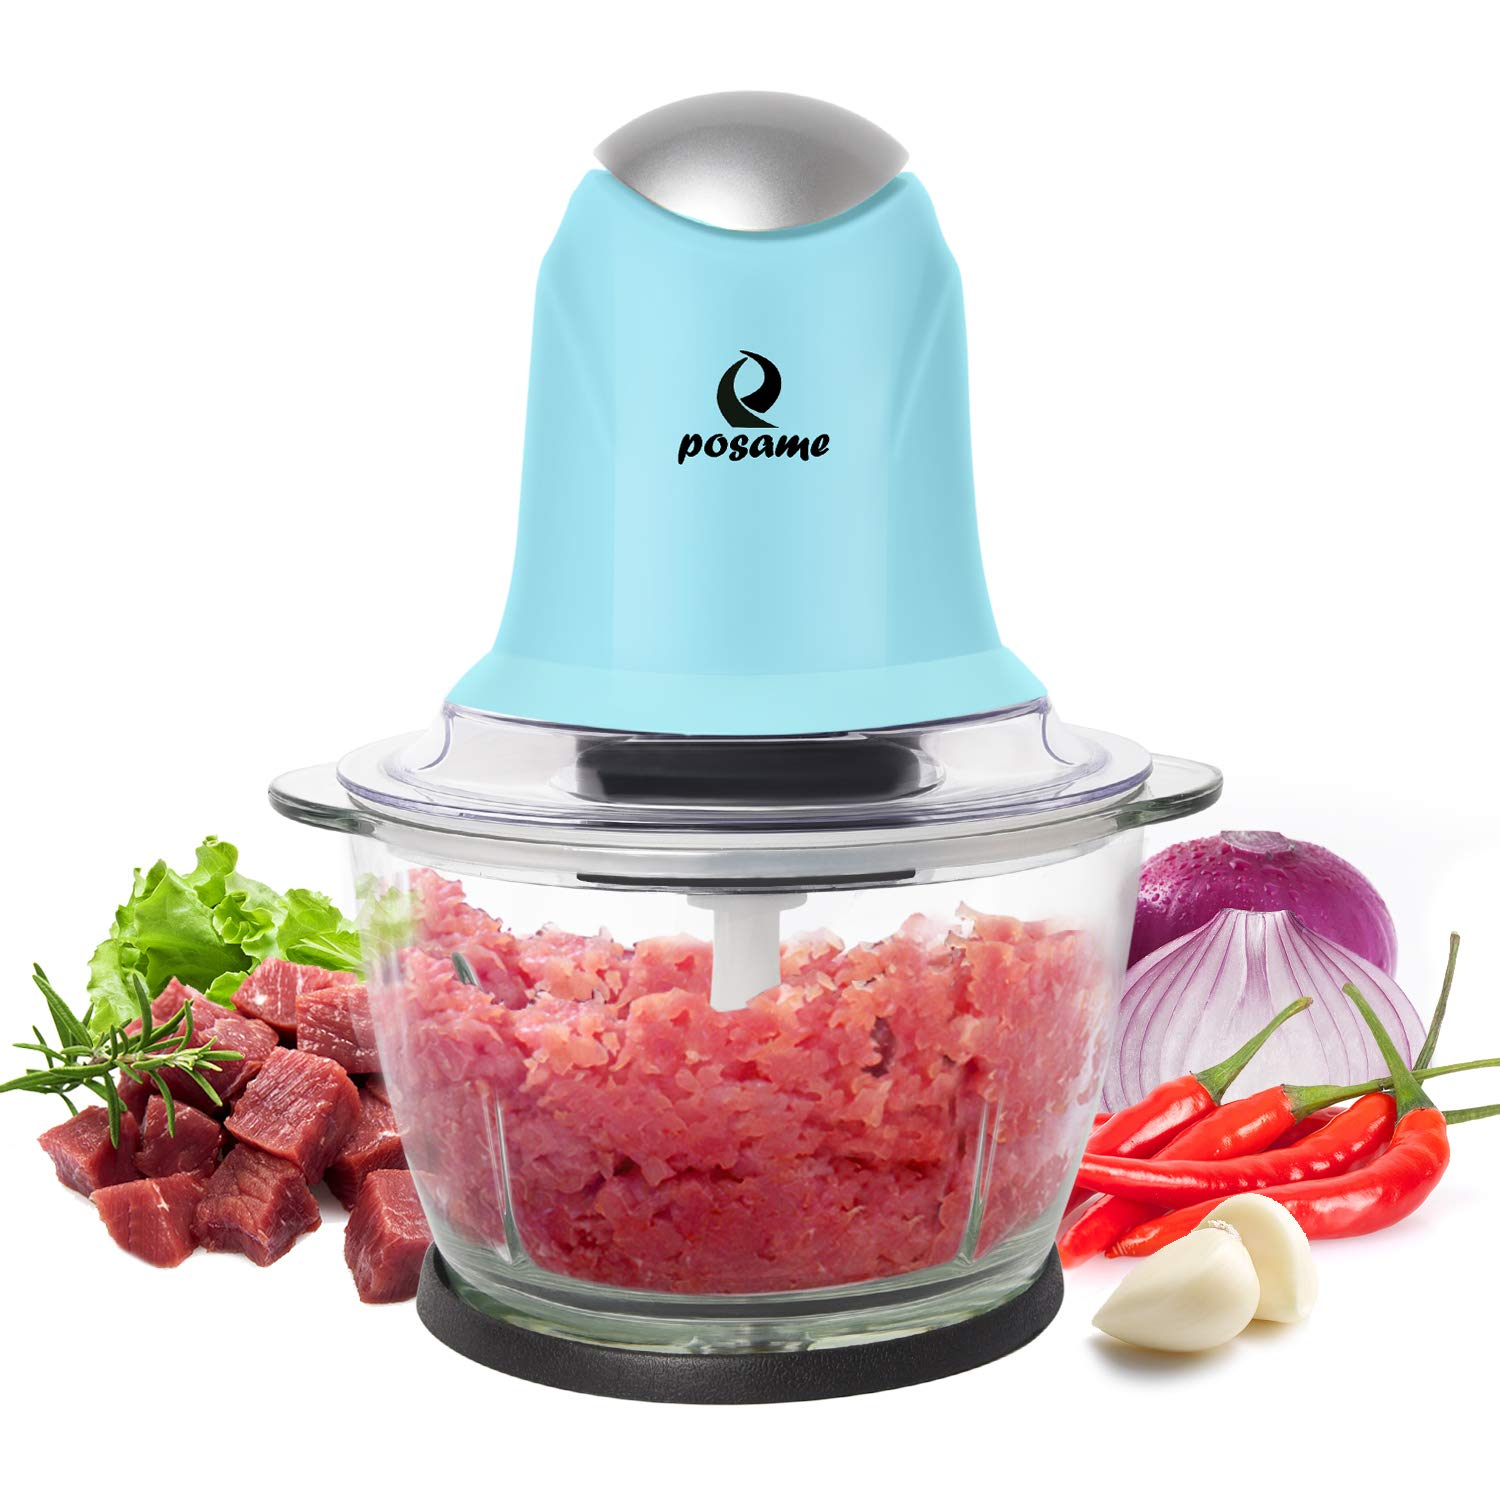 POSAME Meat Grinders Electric Food Processor,Mini Kitchen Food Chopper  Vegetable Fruit Cutter Onion Slicer Dicer, Blender and Mincer, with 4-Cup  Glass